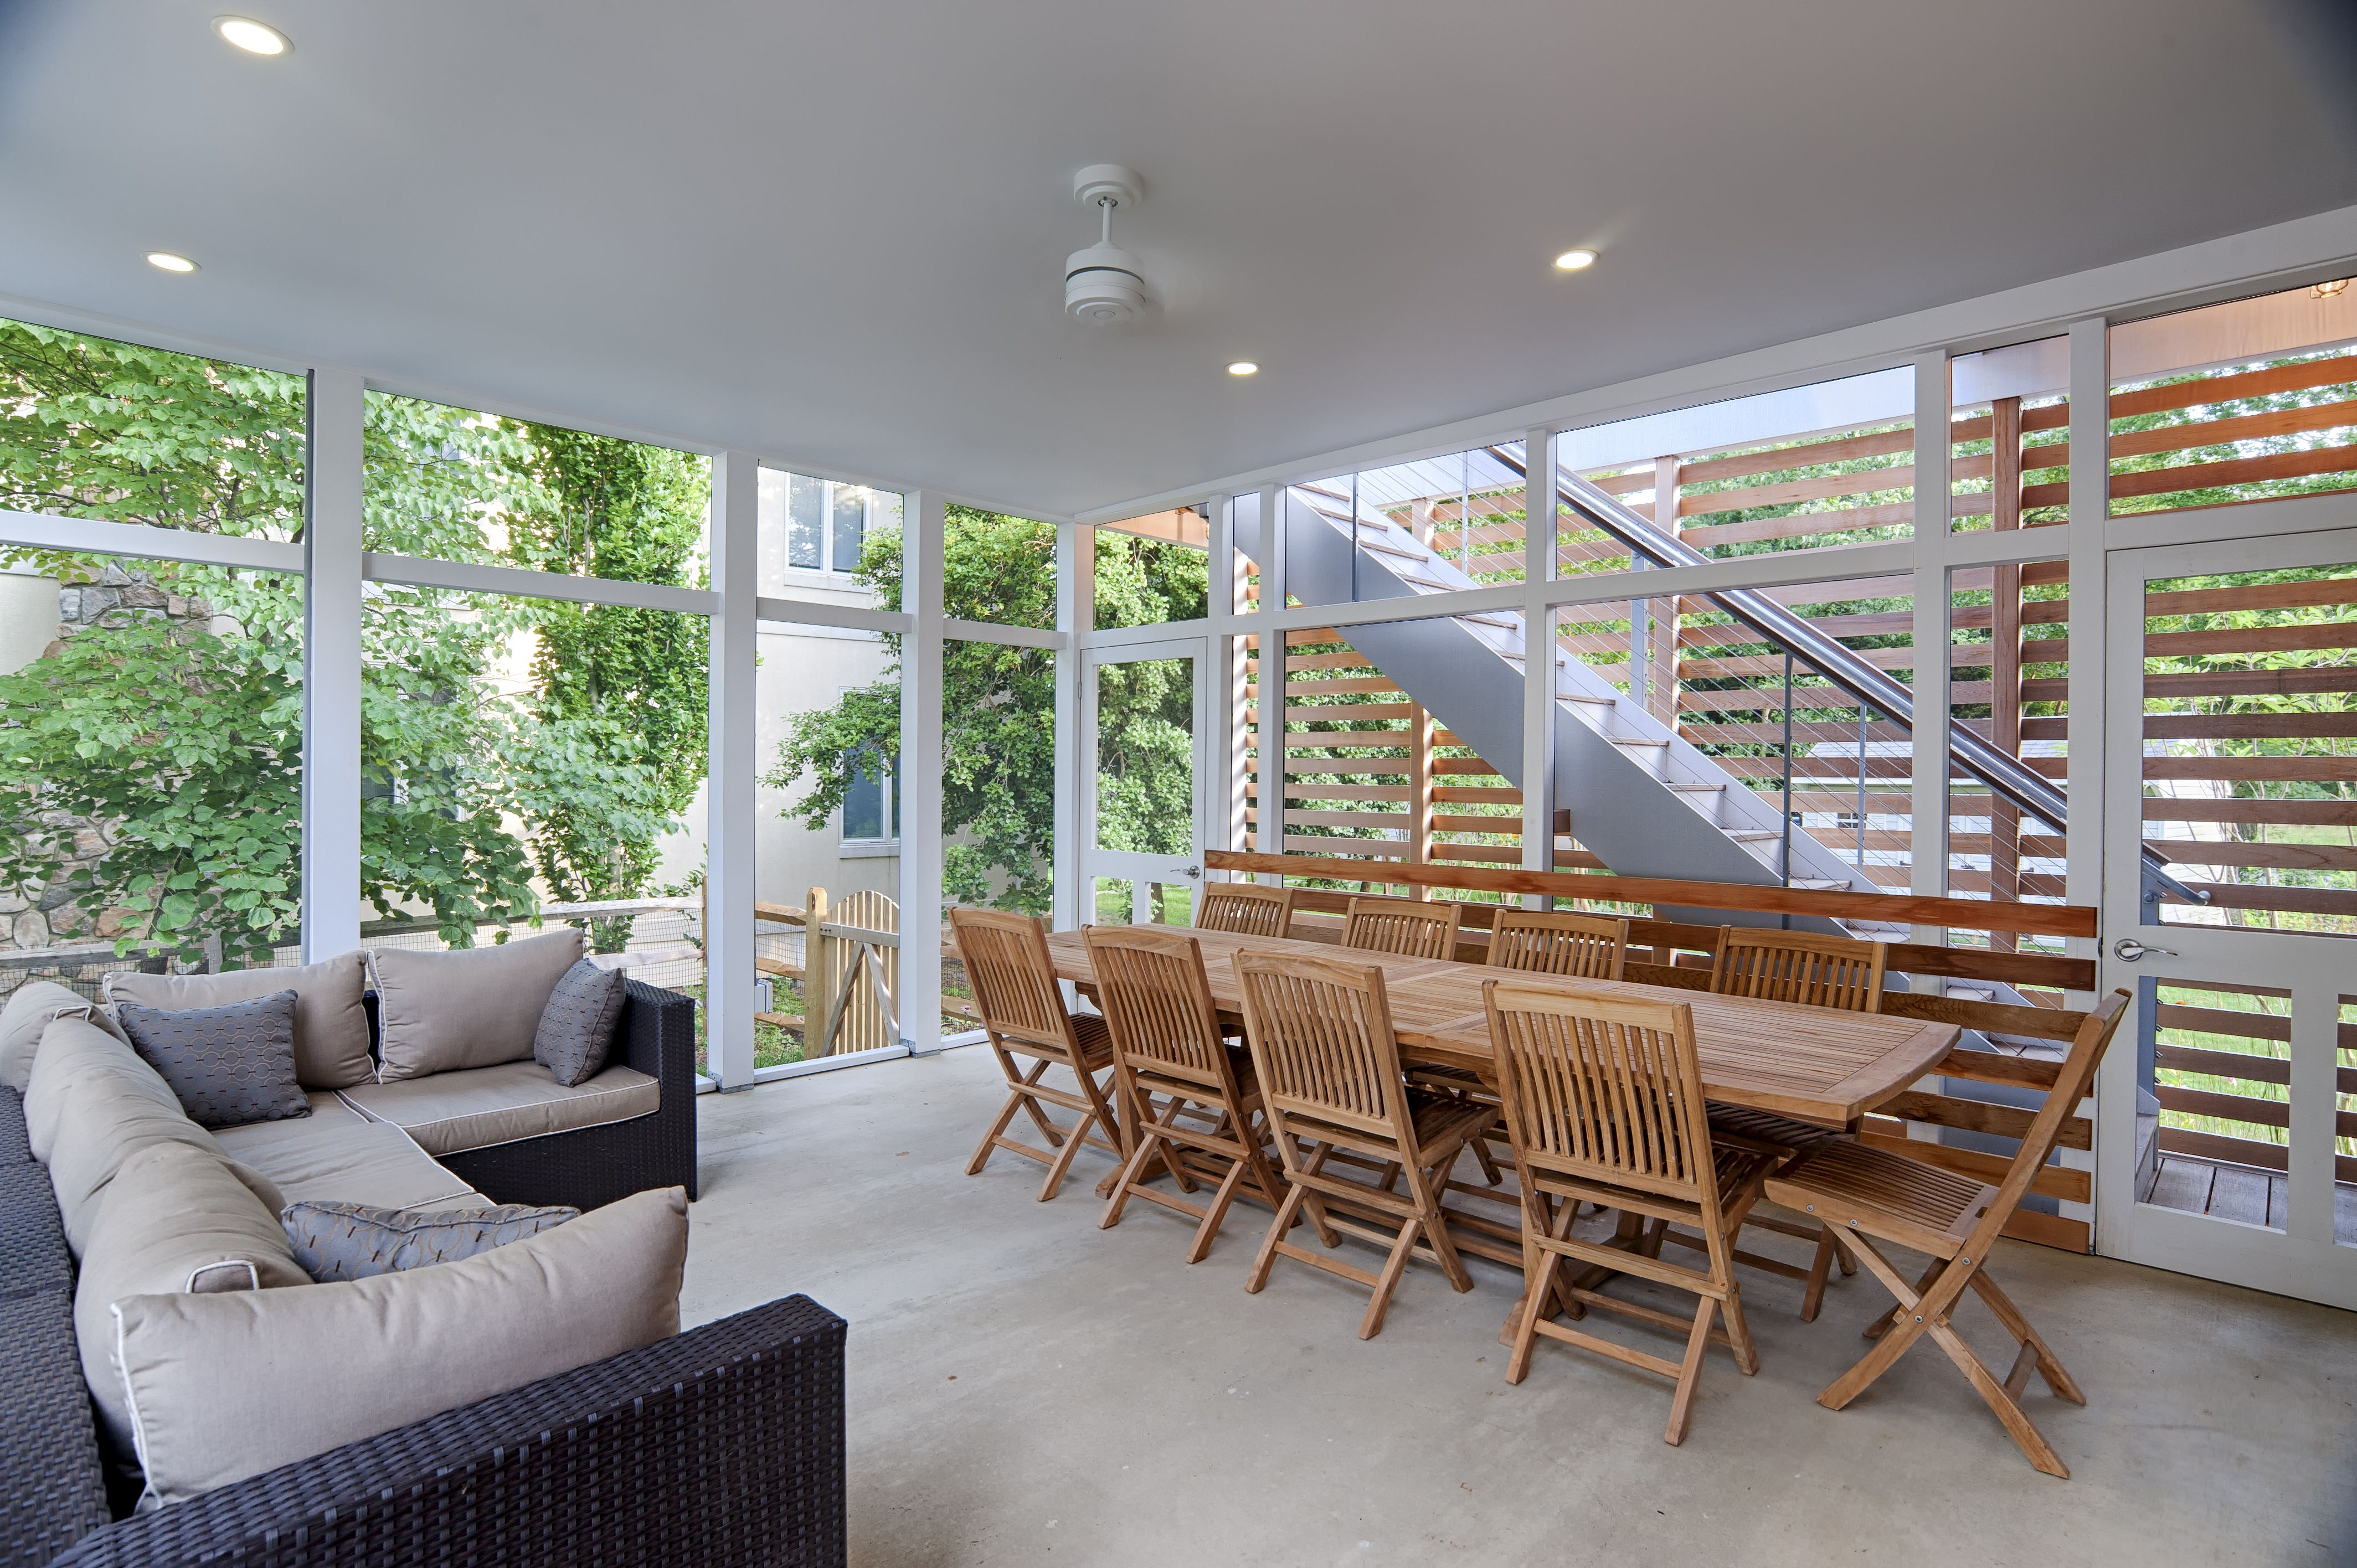 Back exterior of this gorgeous modern home in Annapolis Maryland on